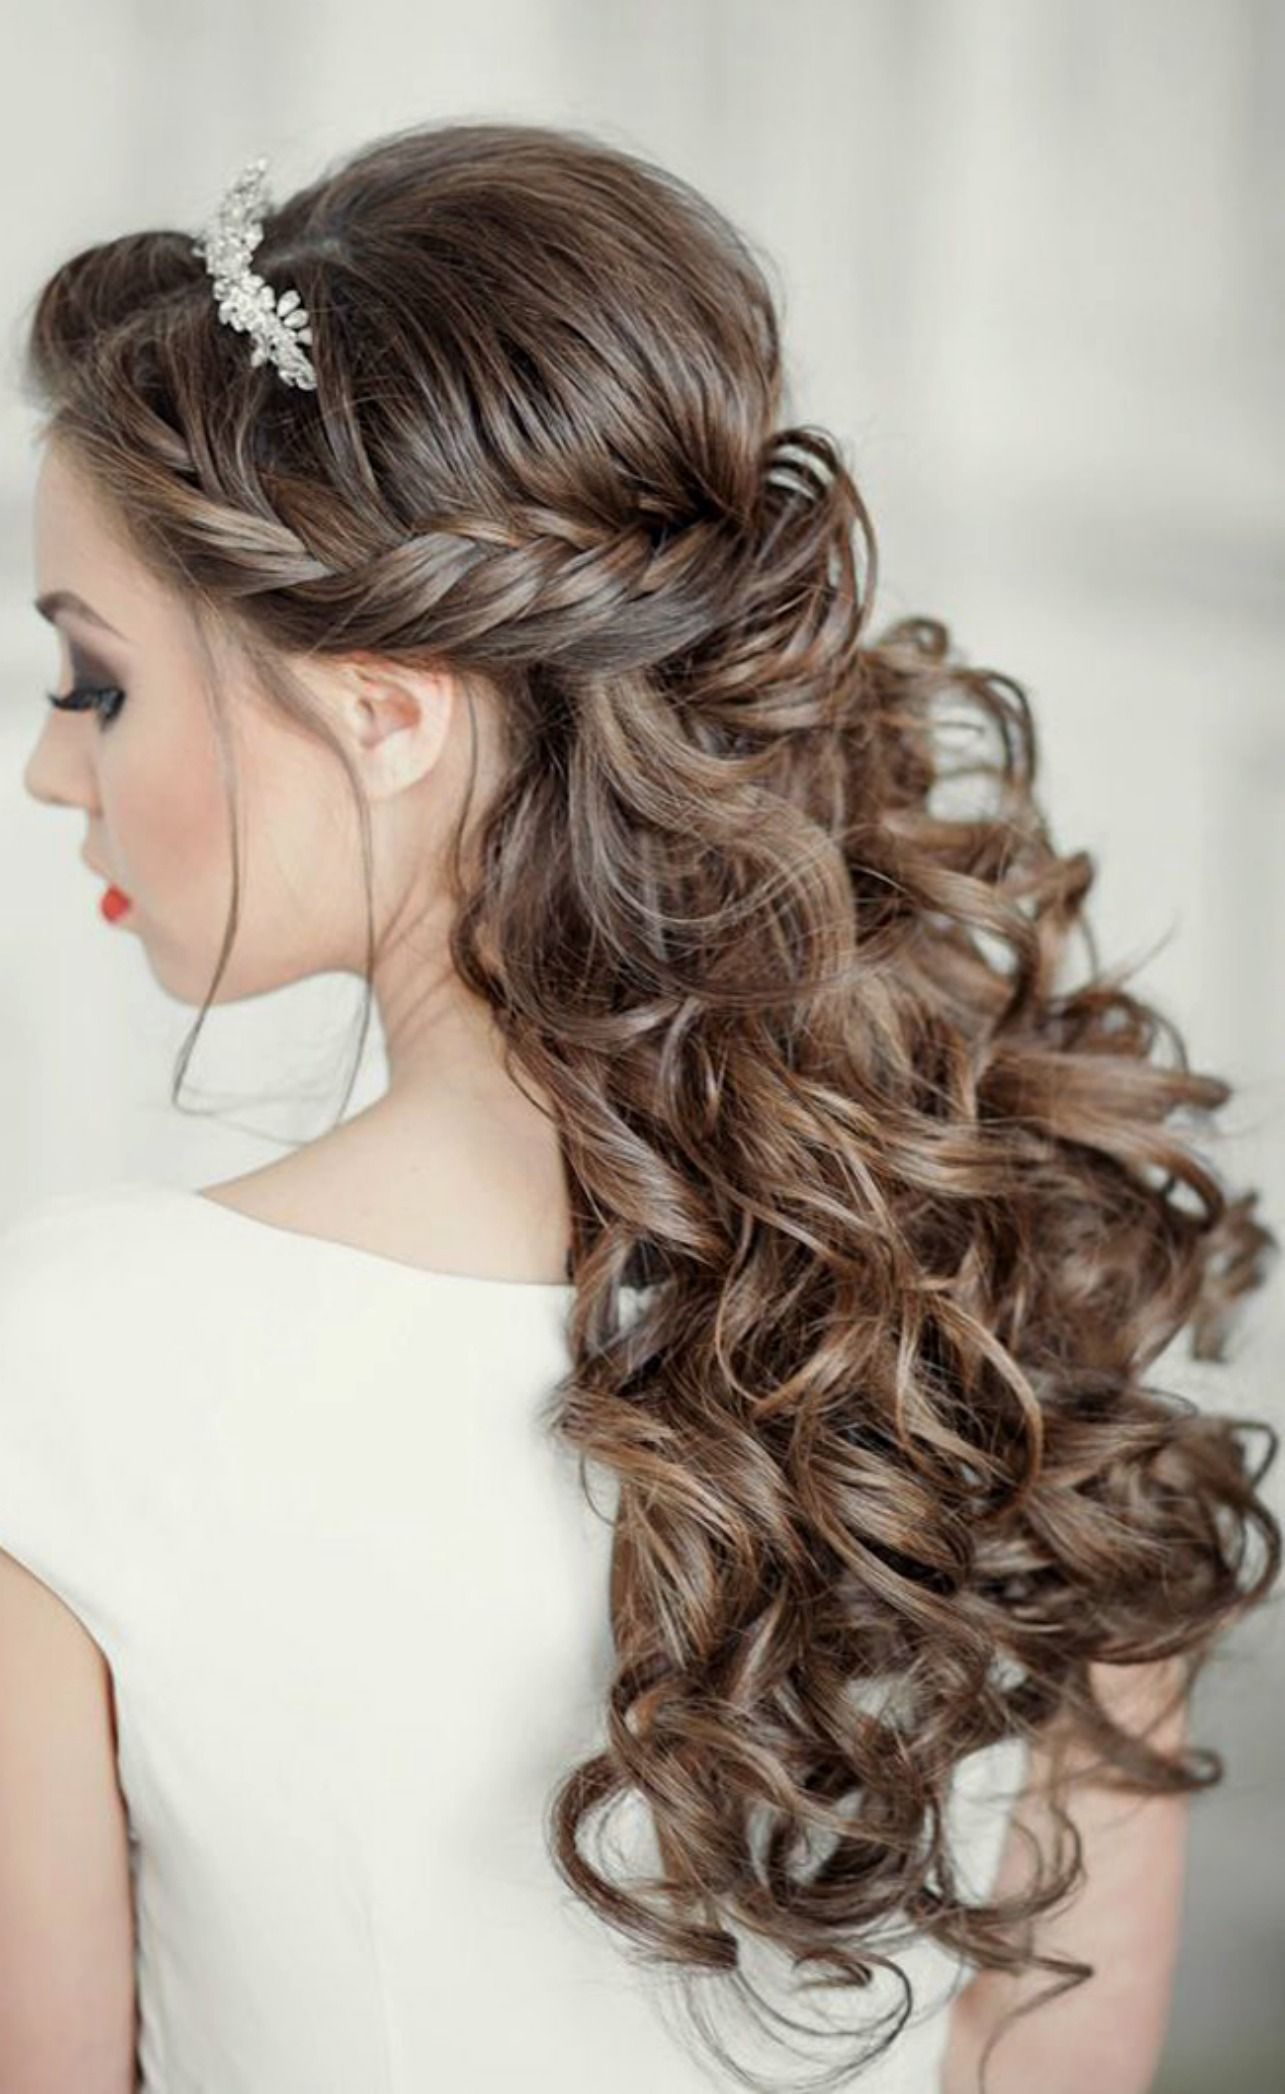 23 gorgeous bridal hairstyles for curly hair | bridal hairstyle